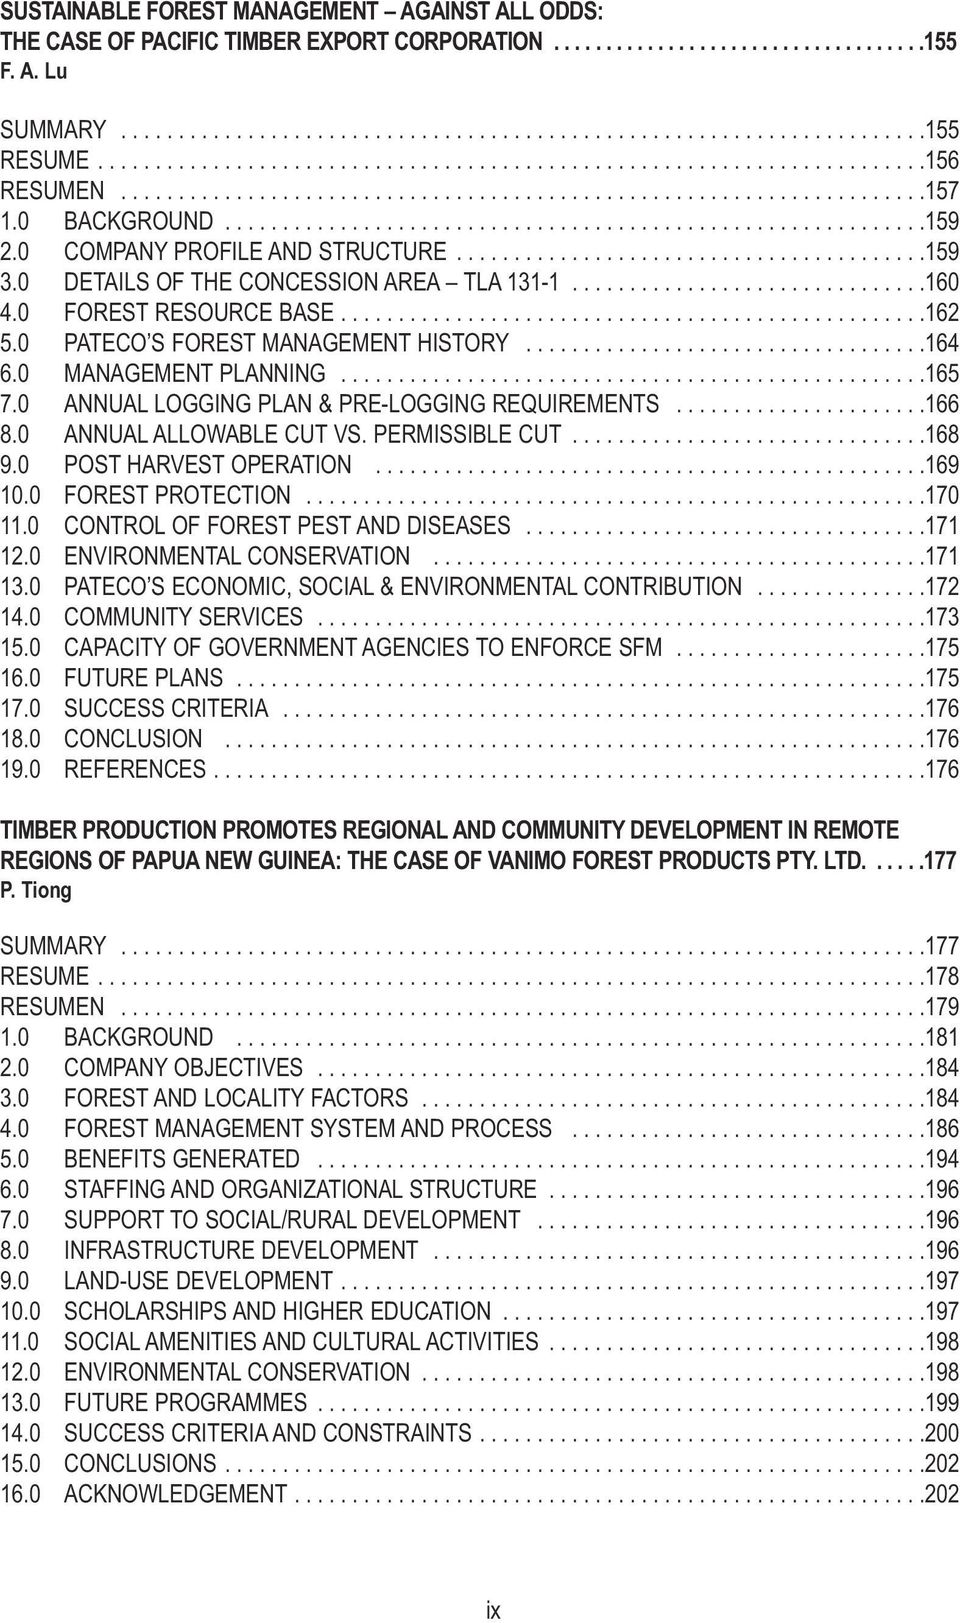 0 COMPANY PROFILE AND STRUCTURE.........................................159 3.0 DETAILS OF THE CONCESSION AREA TLA 131-1...............................160 4.0 FOREST RESOURCE BASE...................................................162 5.